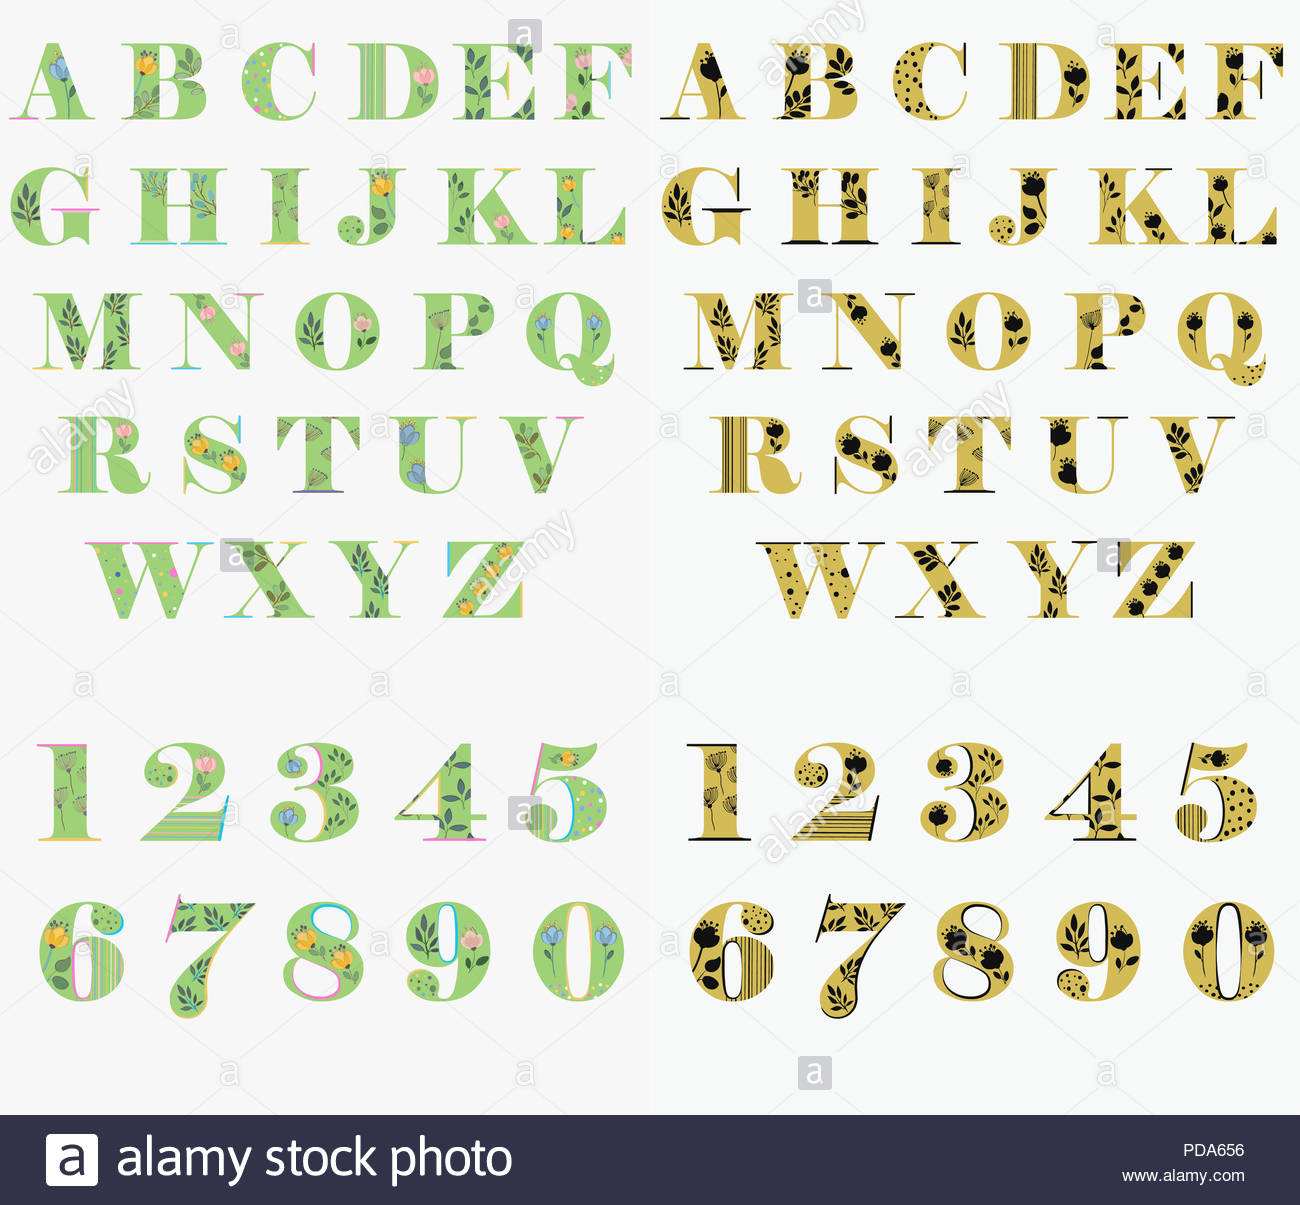 Set Of Letters And Numbers Green Font With Watercolor Flowers And